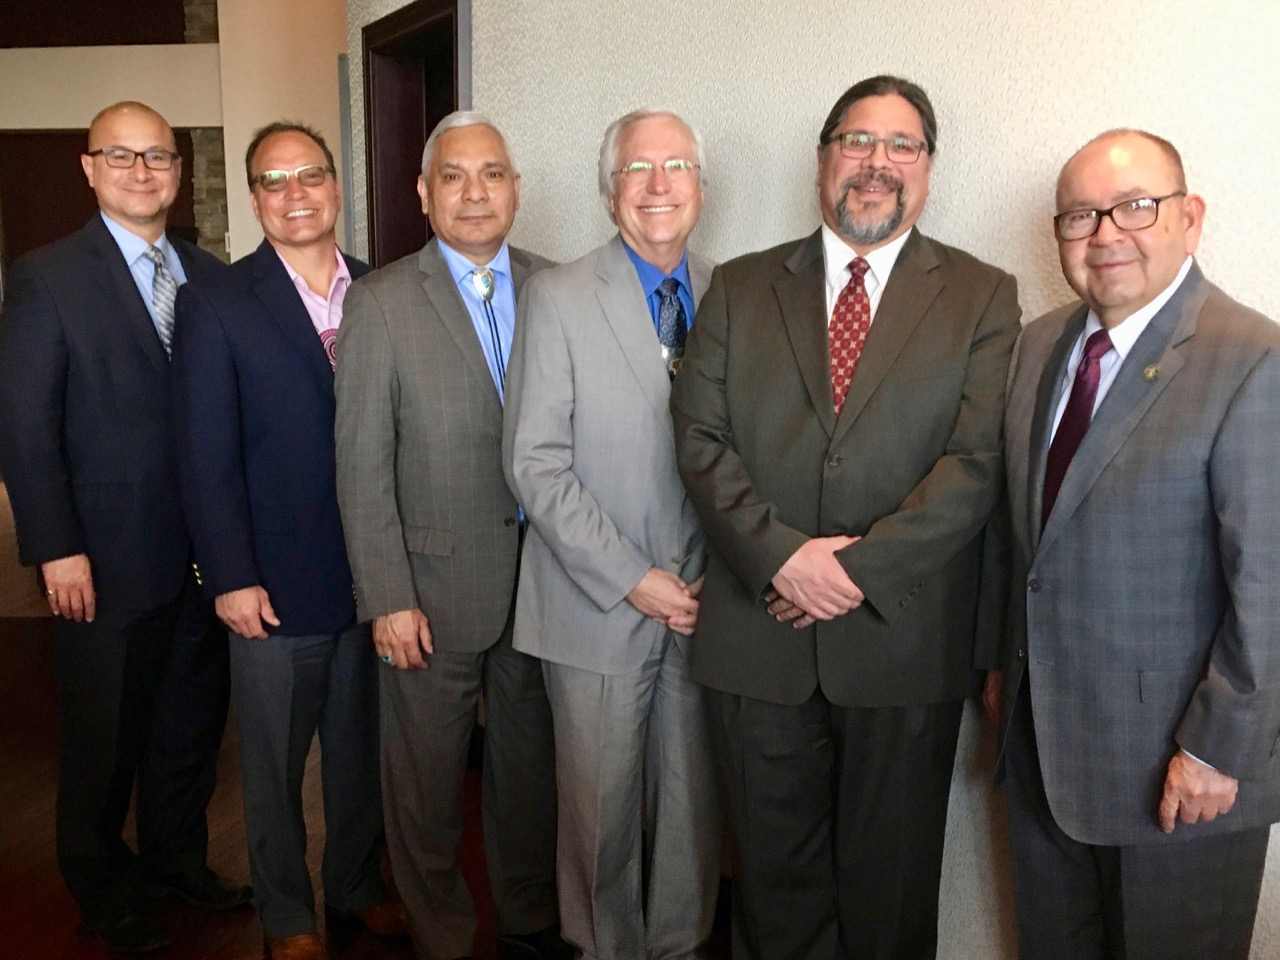 Bill John Baker: Five Civilized Tribes welcome repeal of termination-era law